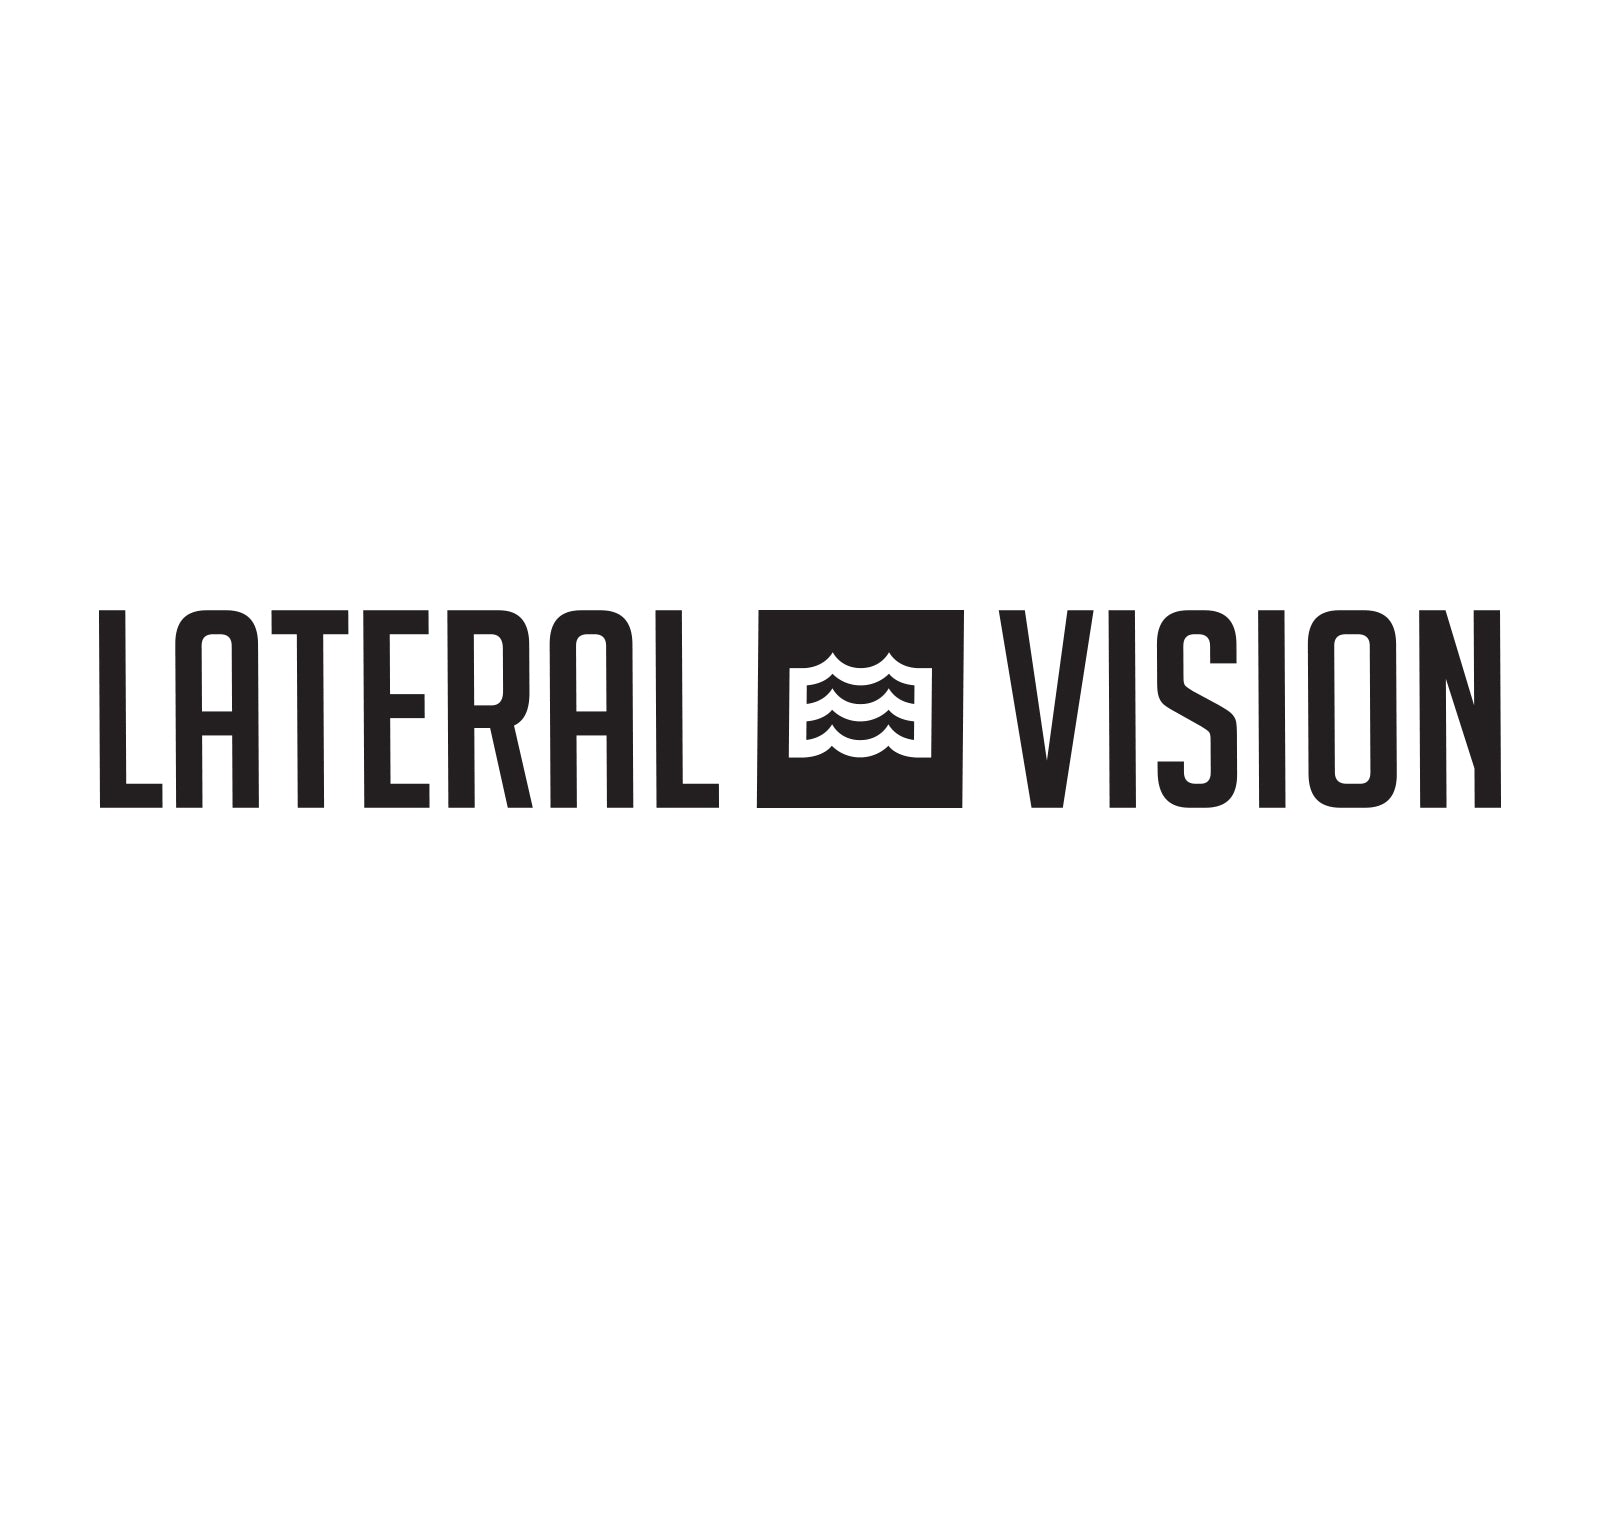 "17"" Lateral Vision Decal (Black)"